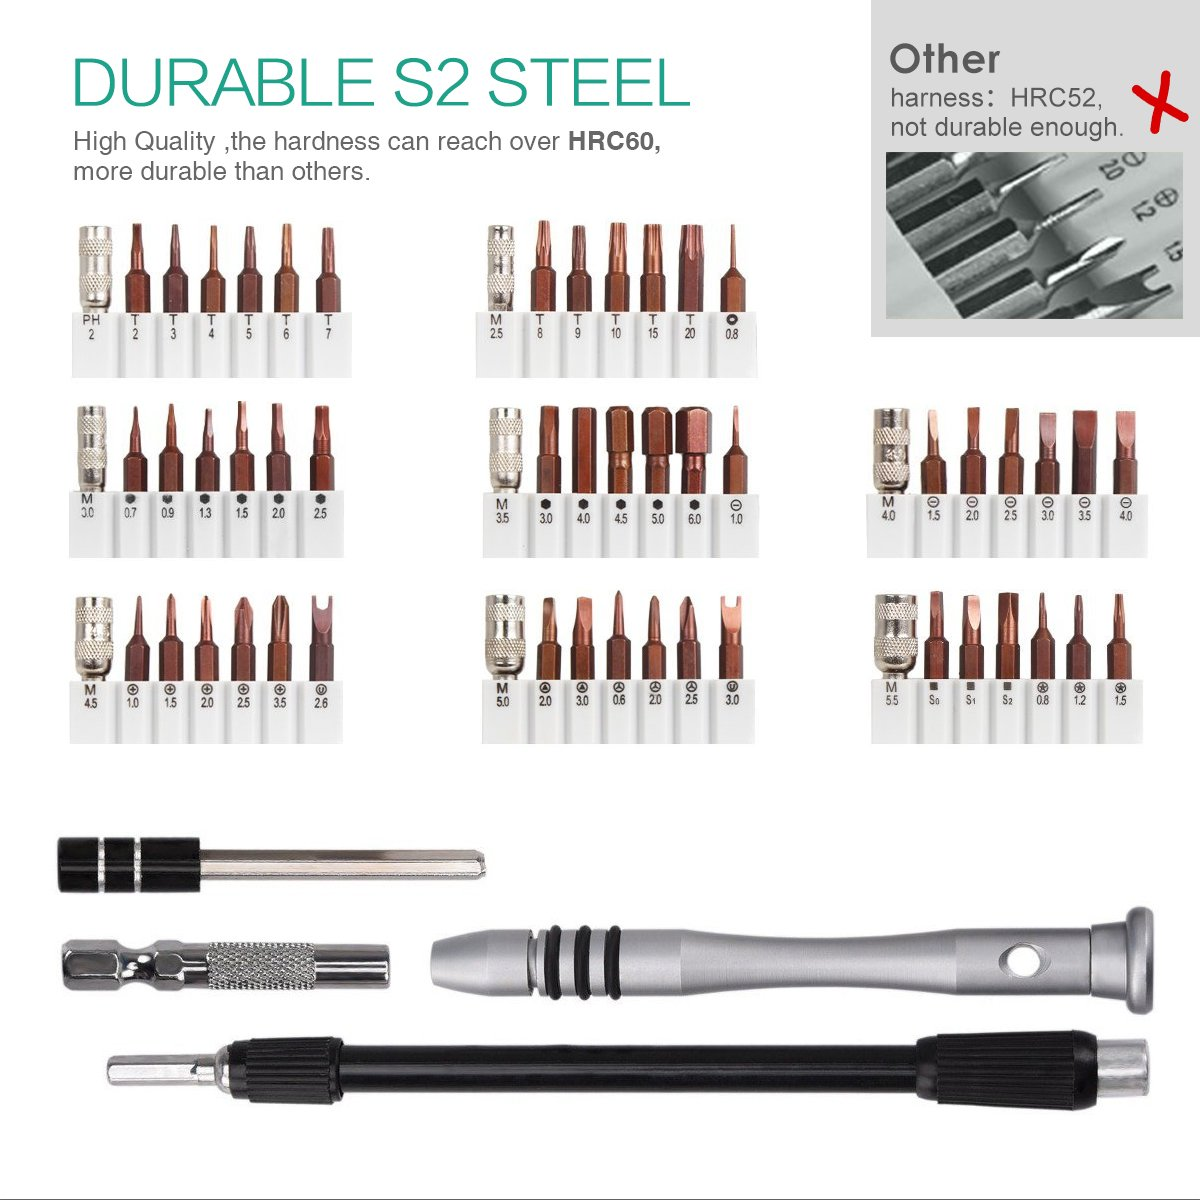 ORIA Screwdriver Set, Magnetic Driver Kit, Professional Electronics Repair Tool Kit, S2 Steel 60 in 1 Precision Screwdriver Kit, Flexible Shaft, for iPhone/Smartphone/Game Console/Tablet/MacBook by ORIA (Image #2)